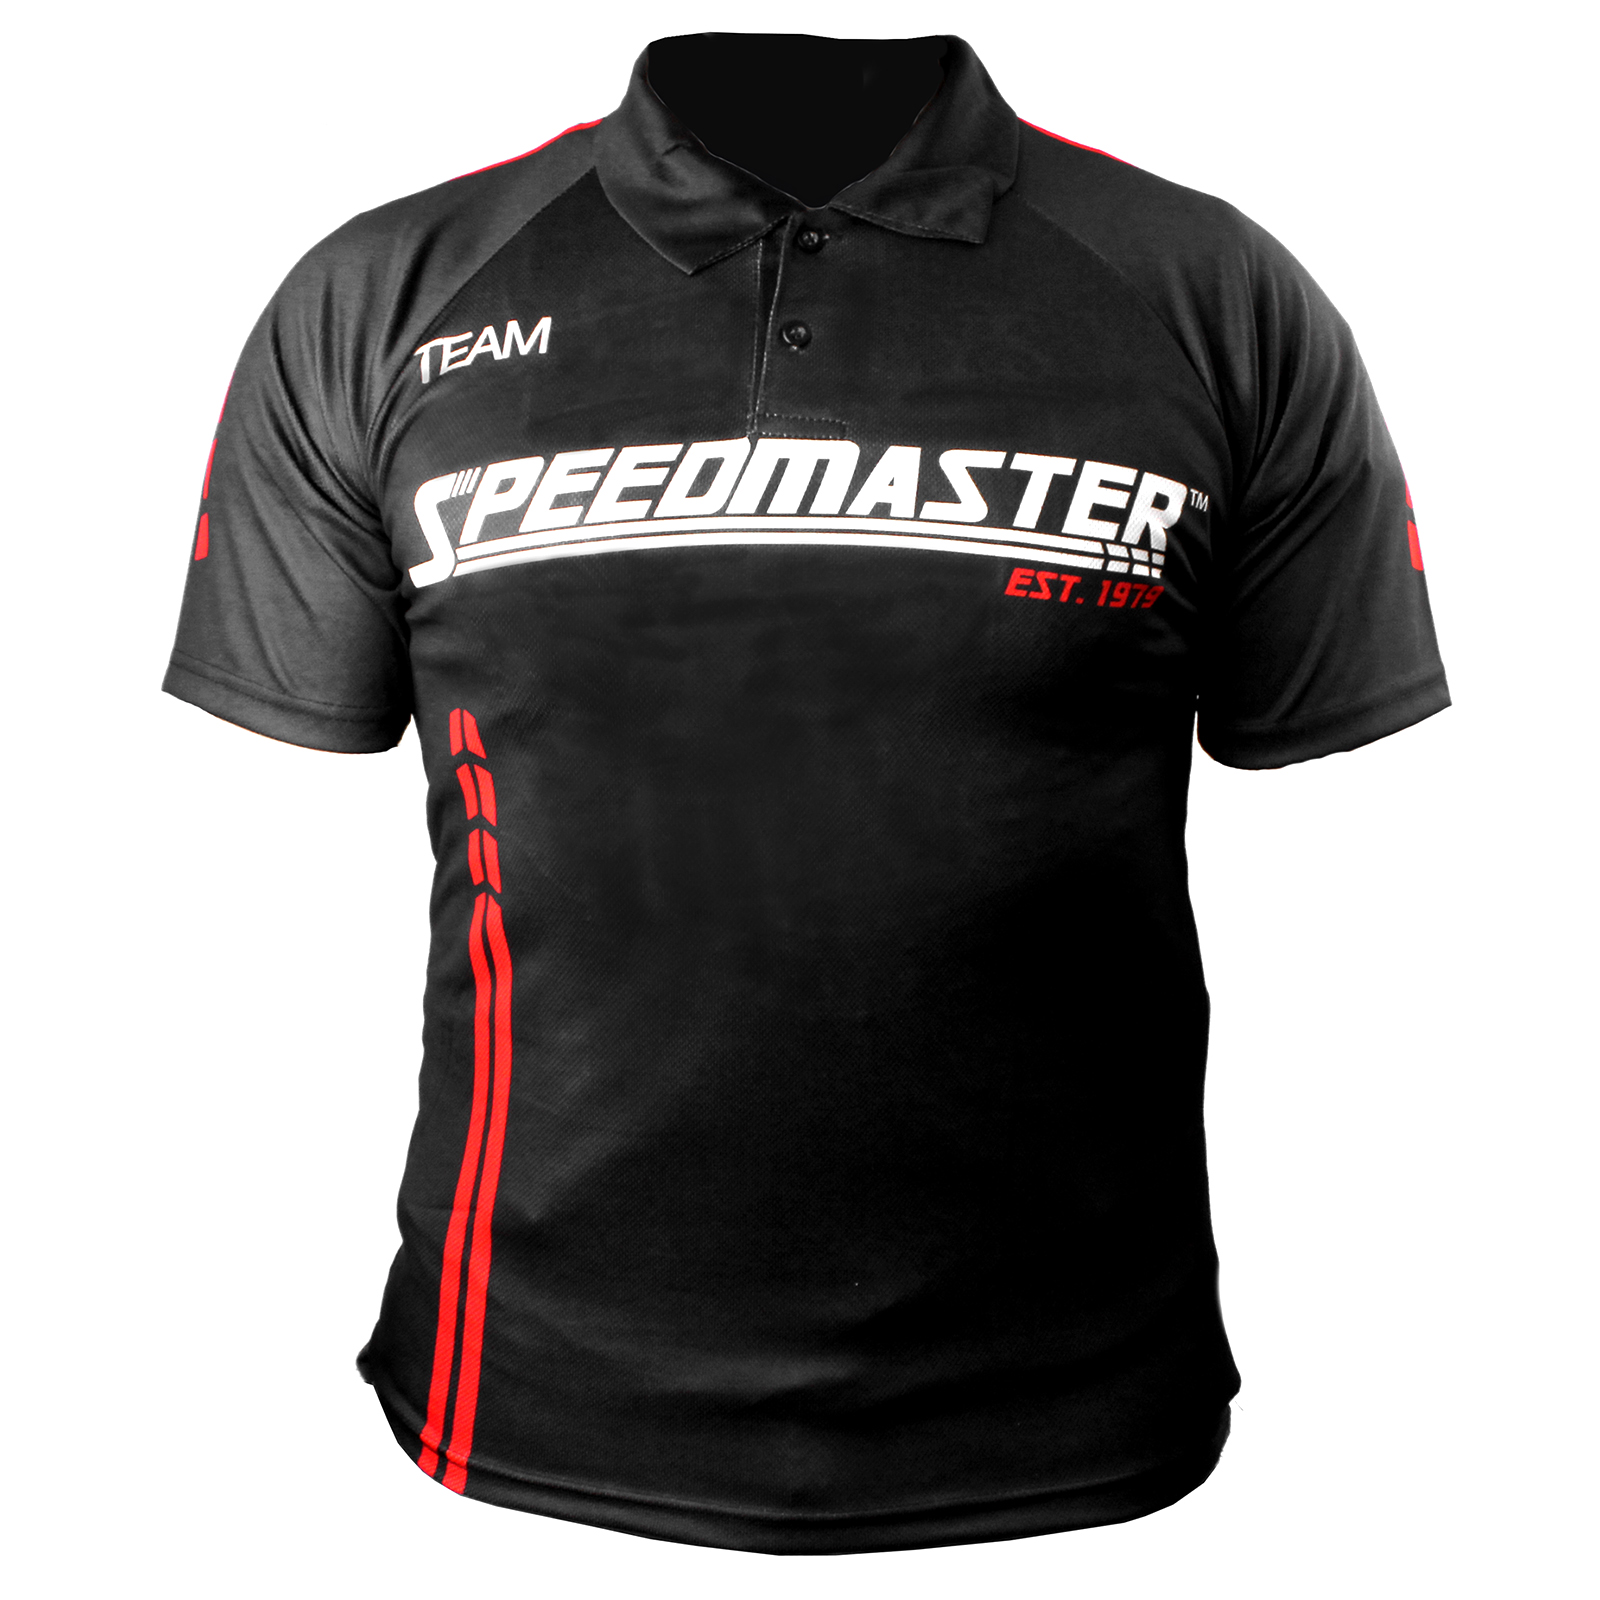 Speedmaster Team Jersey / Polo Shirt - XXXX Large 4XL